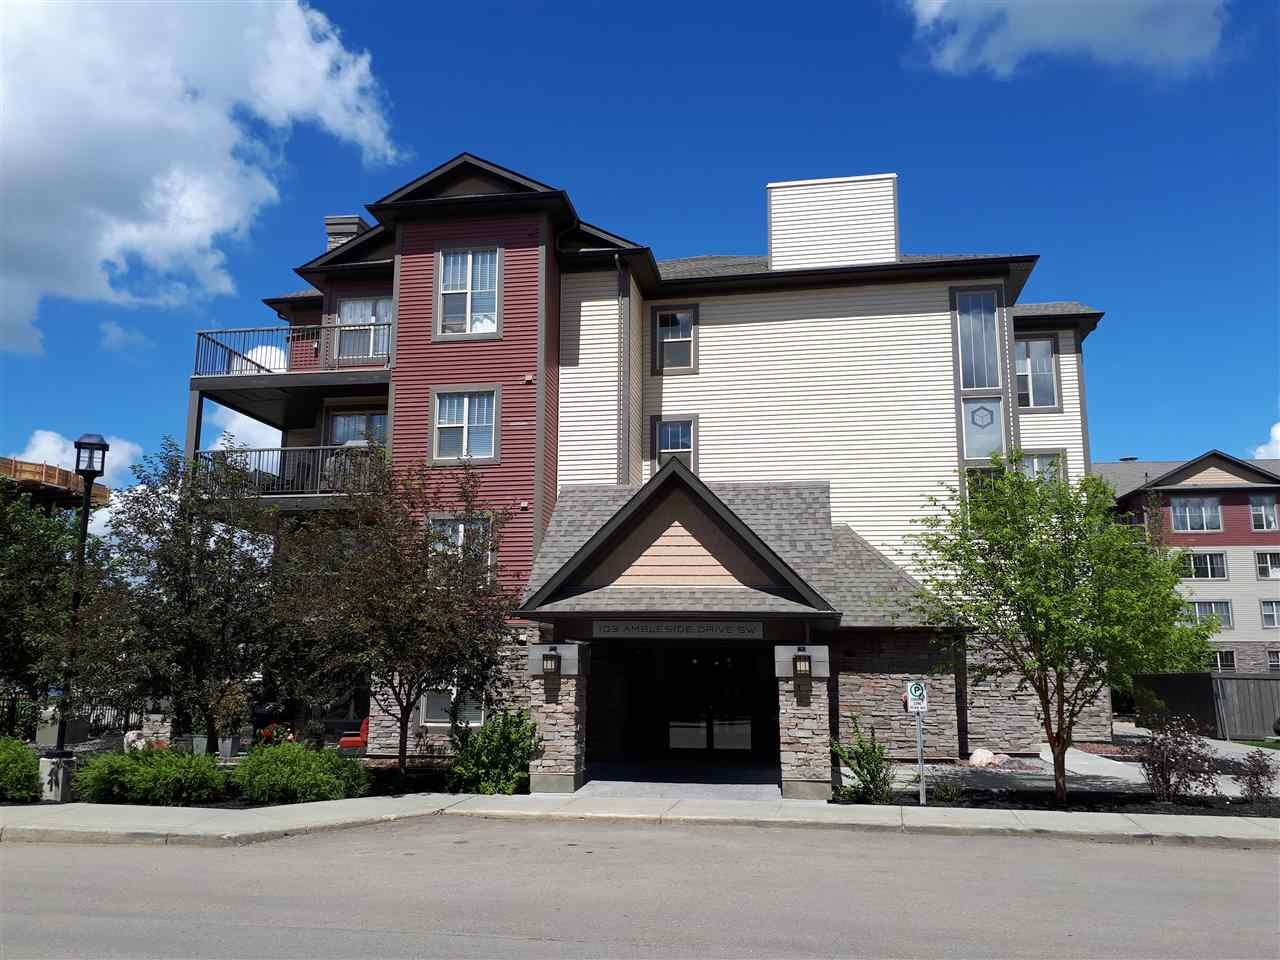 Main Photo: 307 103 AMBLESIDE Drive in Edmonton: Zone 56 Condo for sale : MLS(r) # E4065685